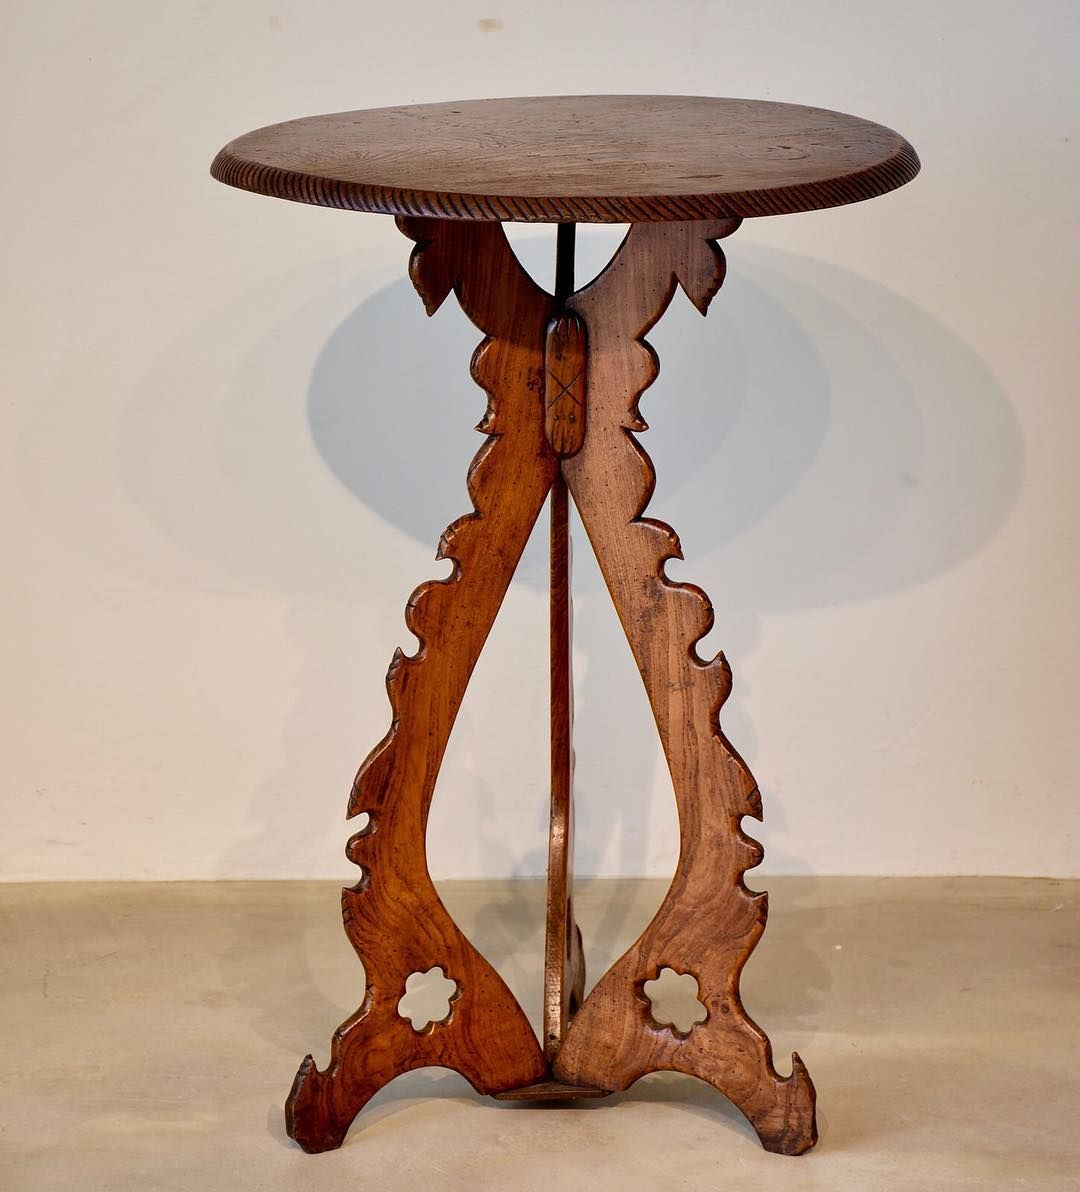 Decorative Collective On Instagram Antique Side Table With